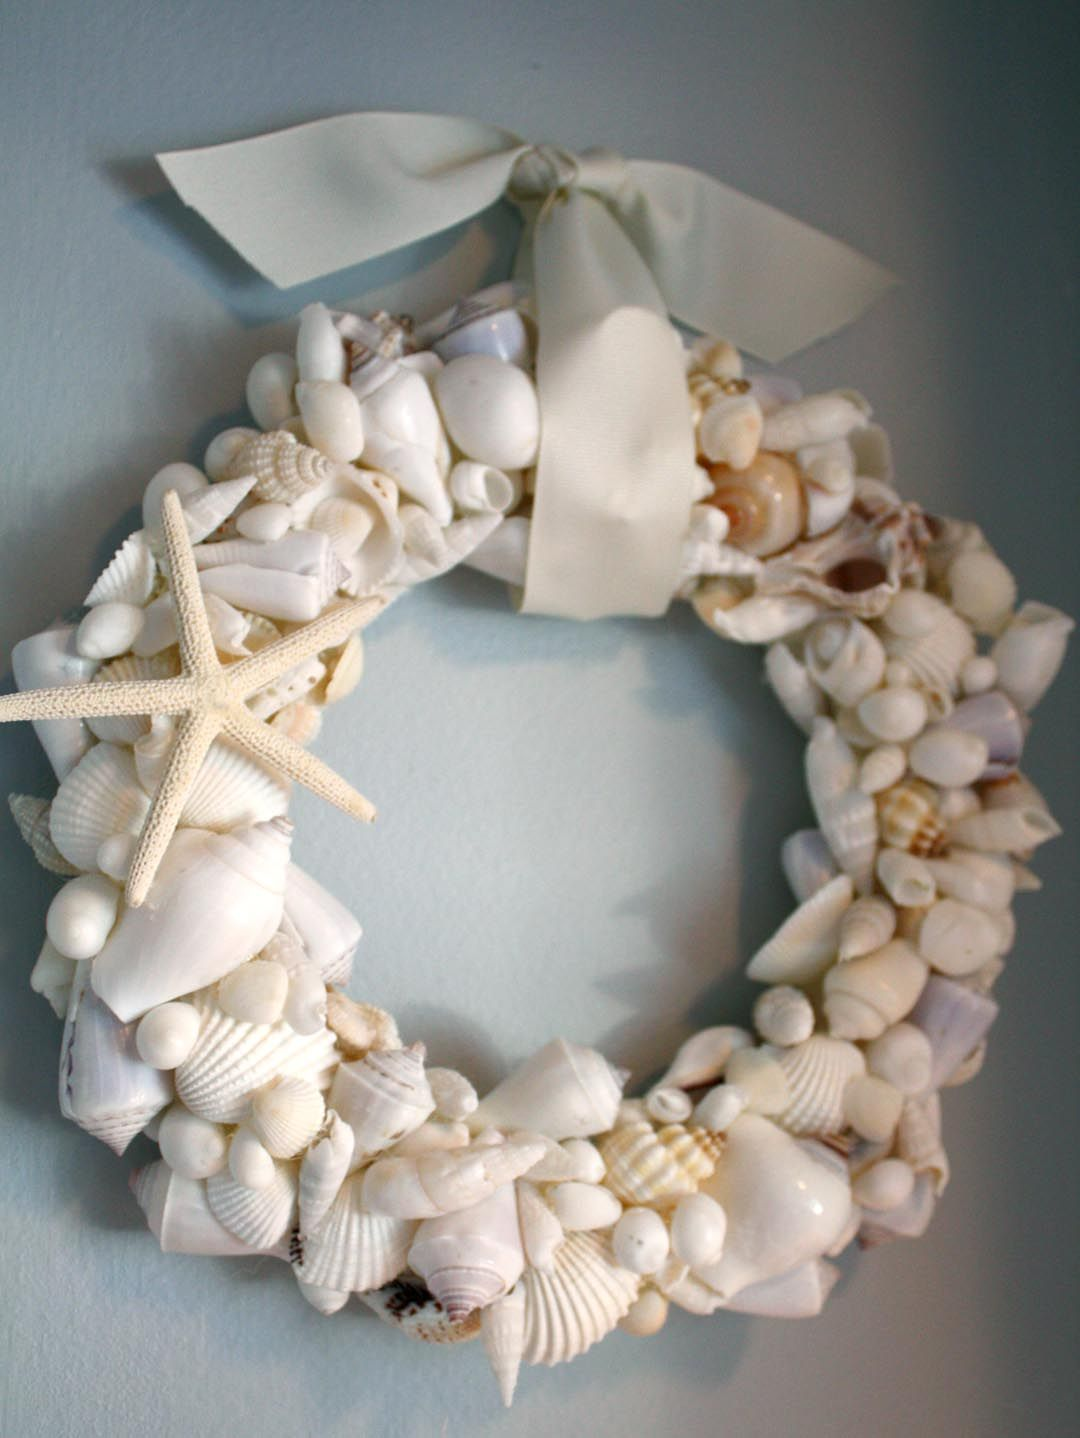 I have lots of seashells we have found on all our trips. I ...